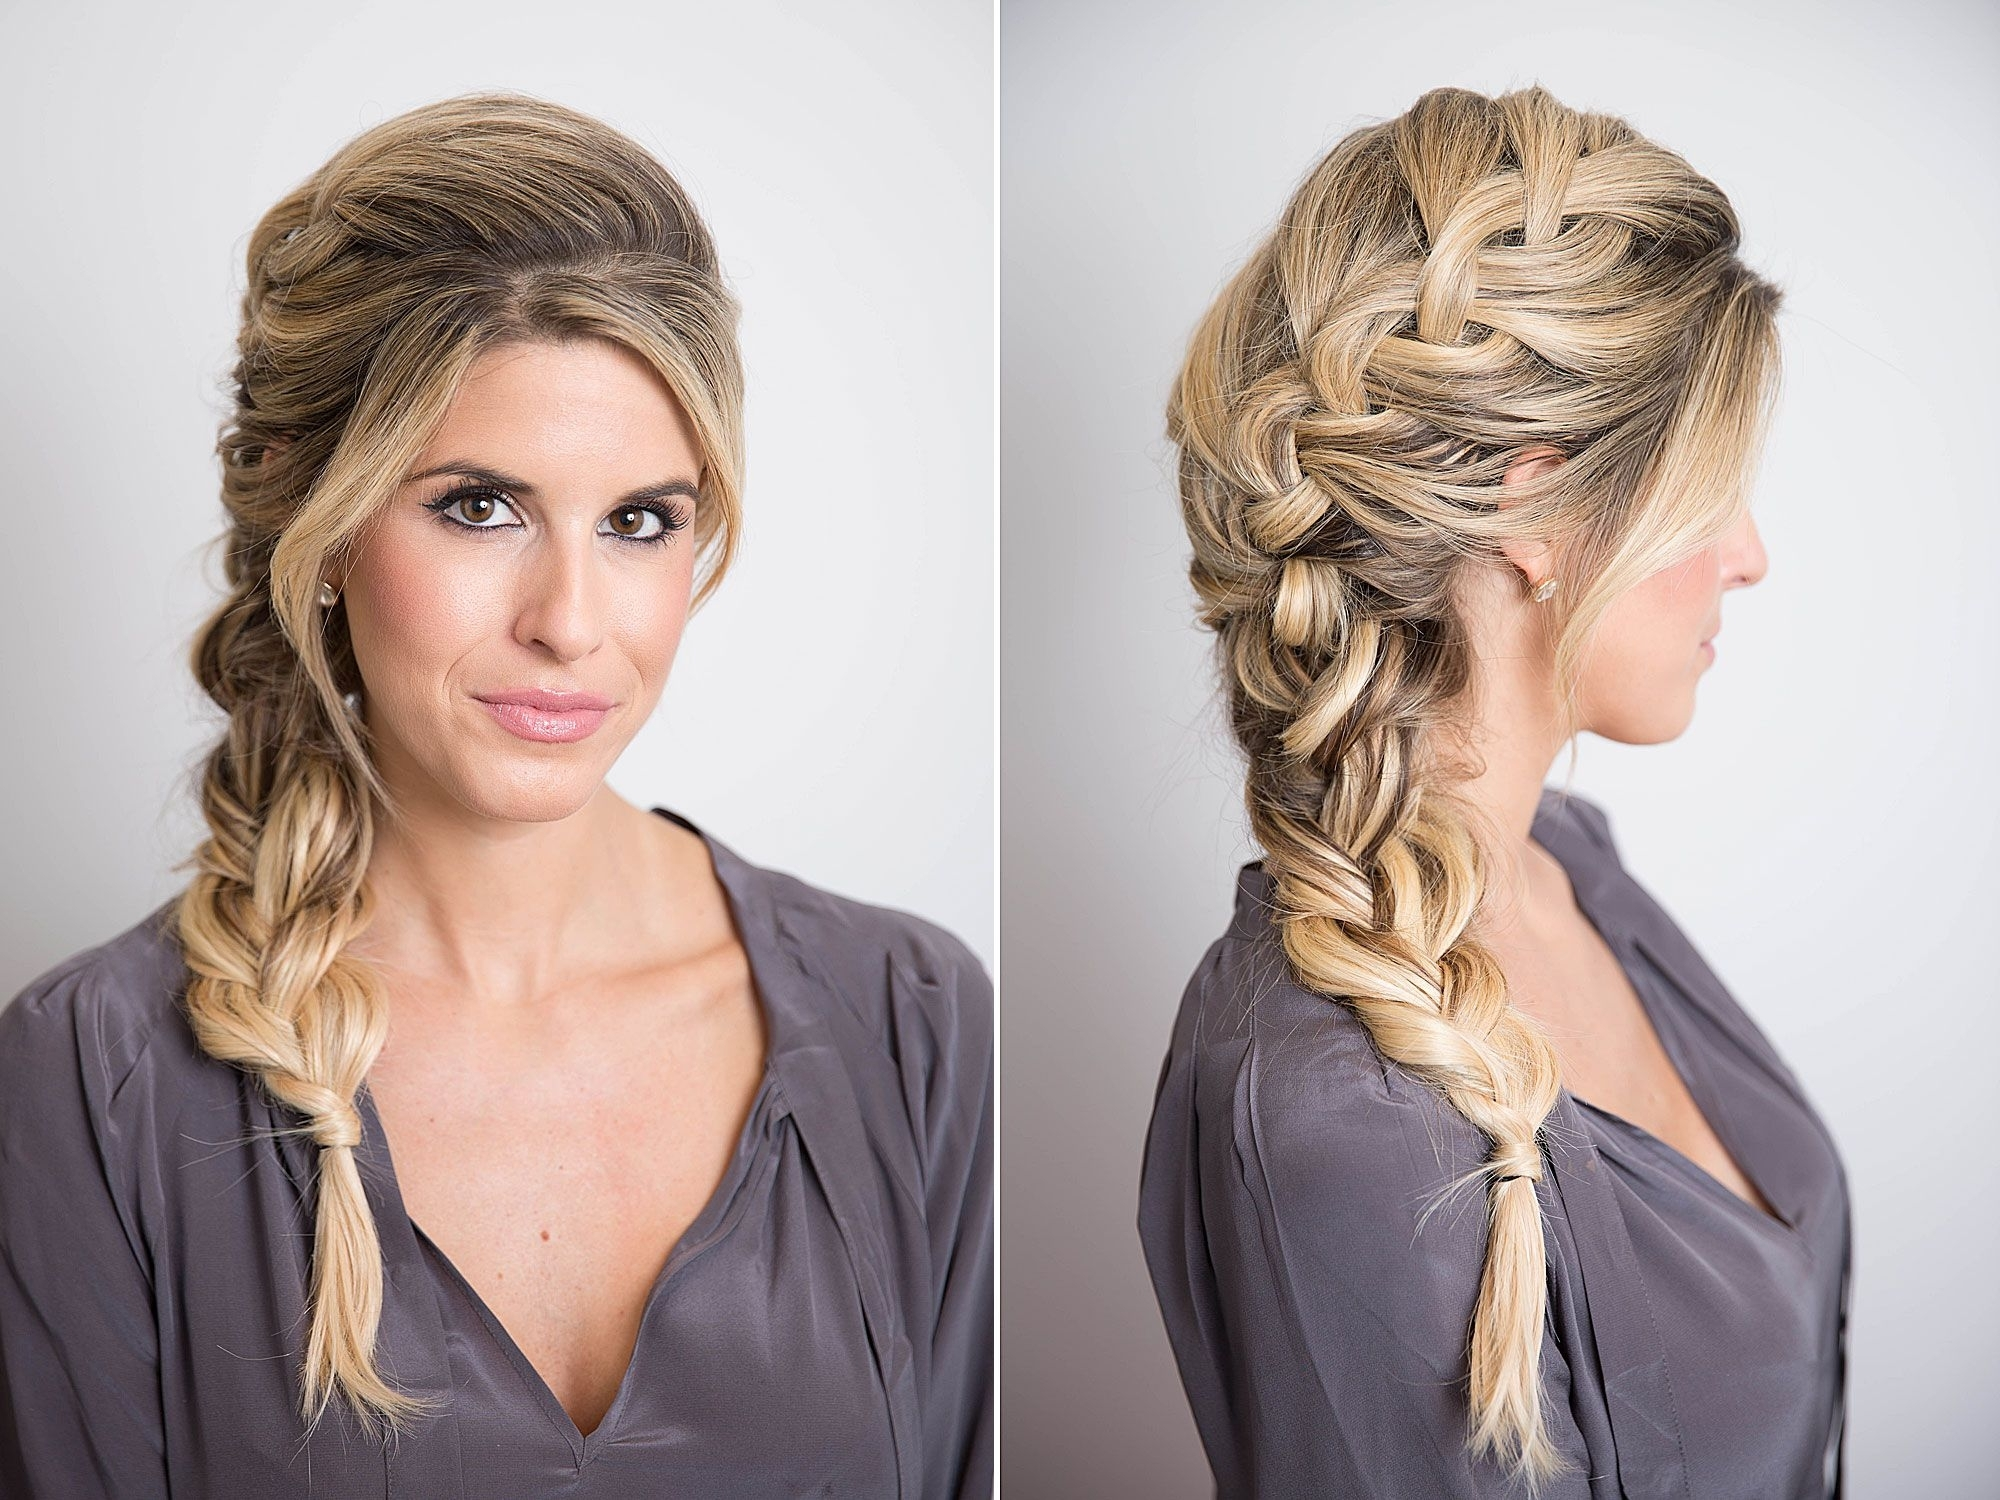 Best And Newest Braided Boho Locks Pony Hairstyles Pertaining To 17 Braided Hairstyles With Gifs – How To Do Every Type Of Braid (View 9 of 20)